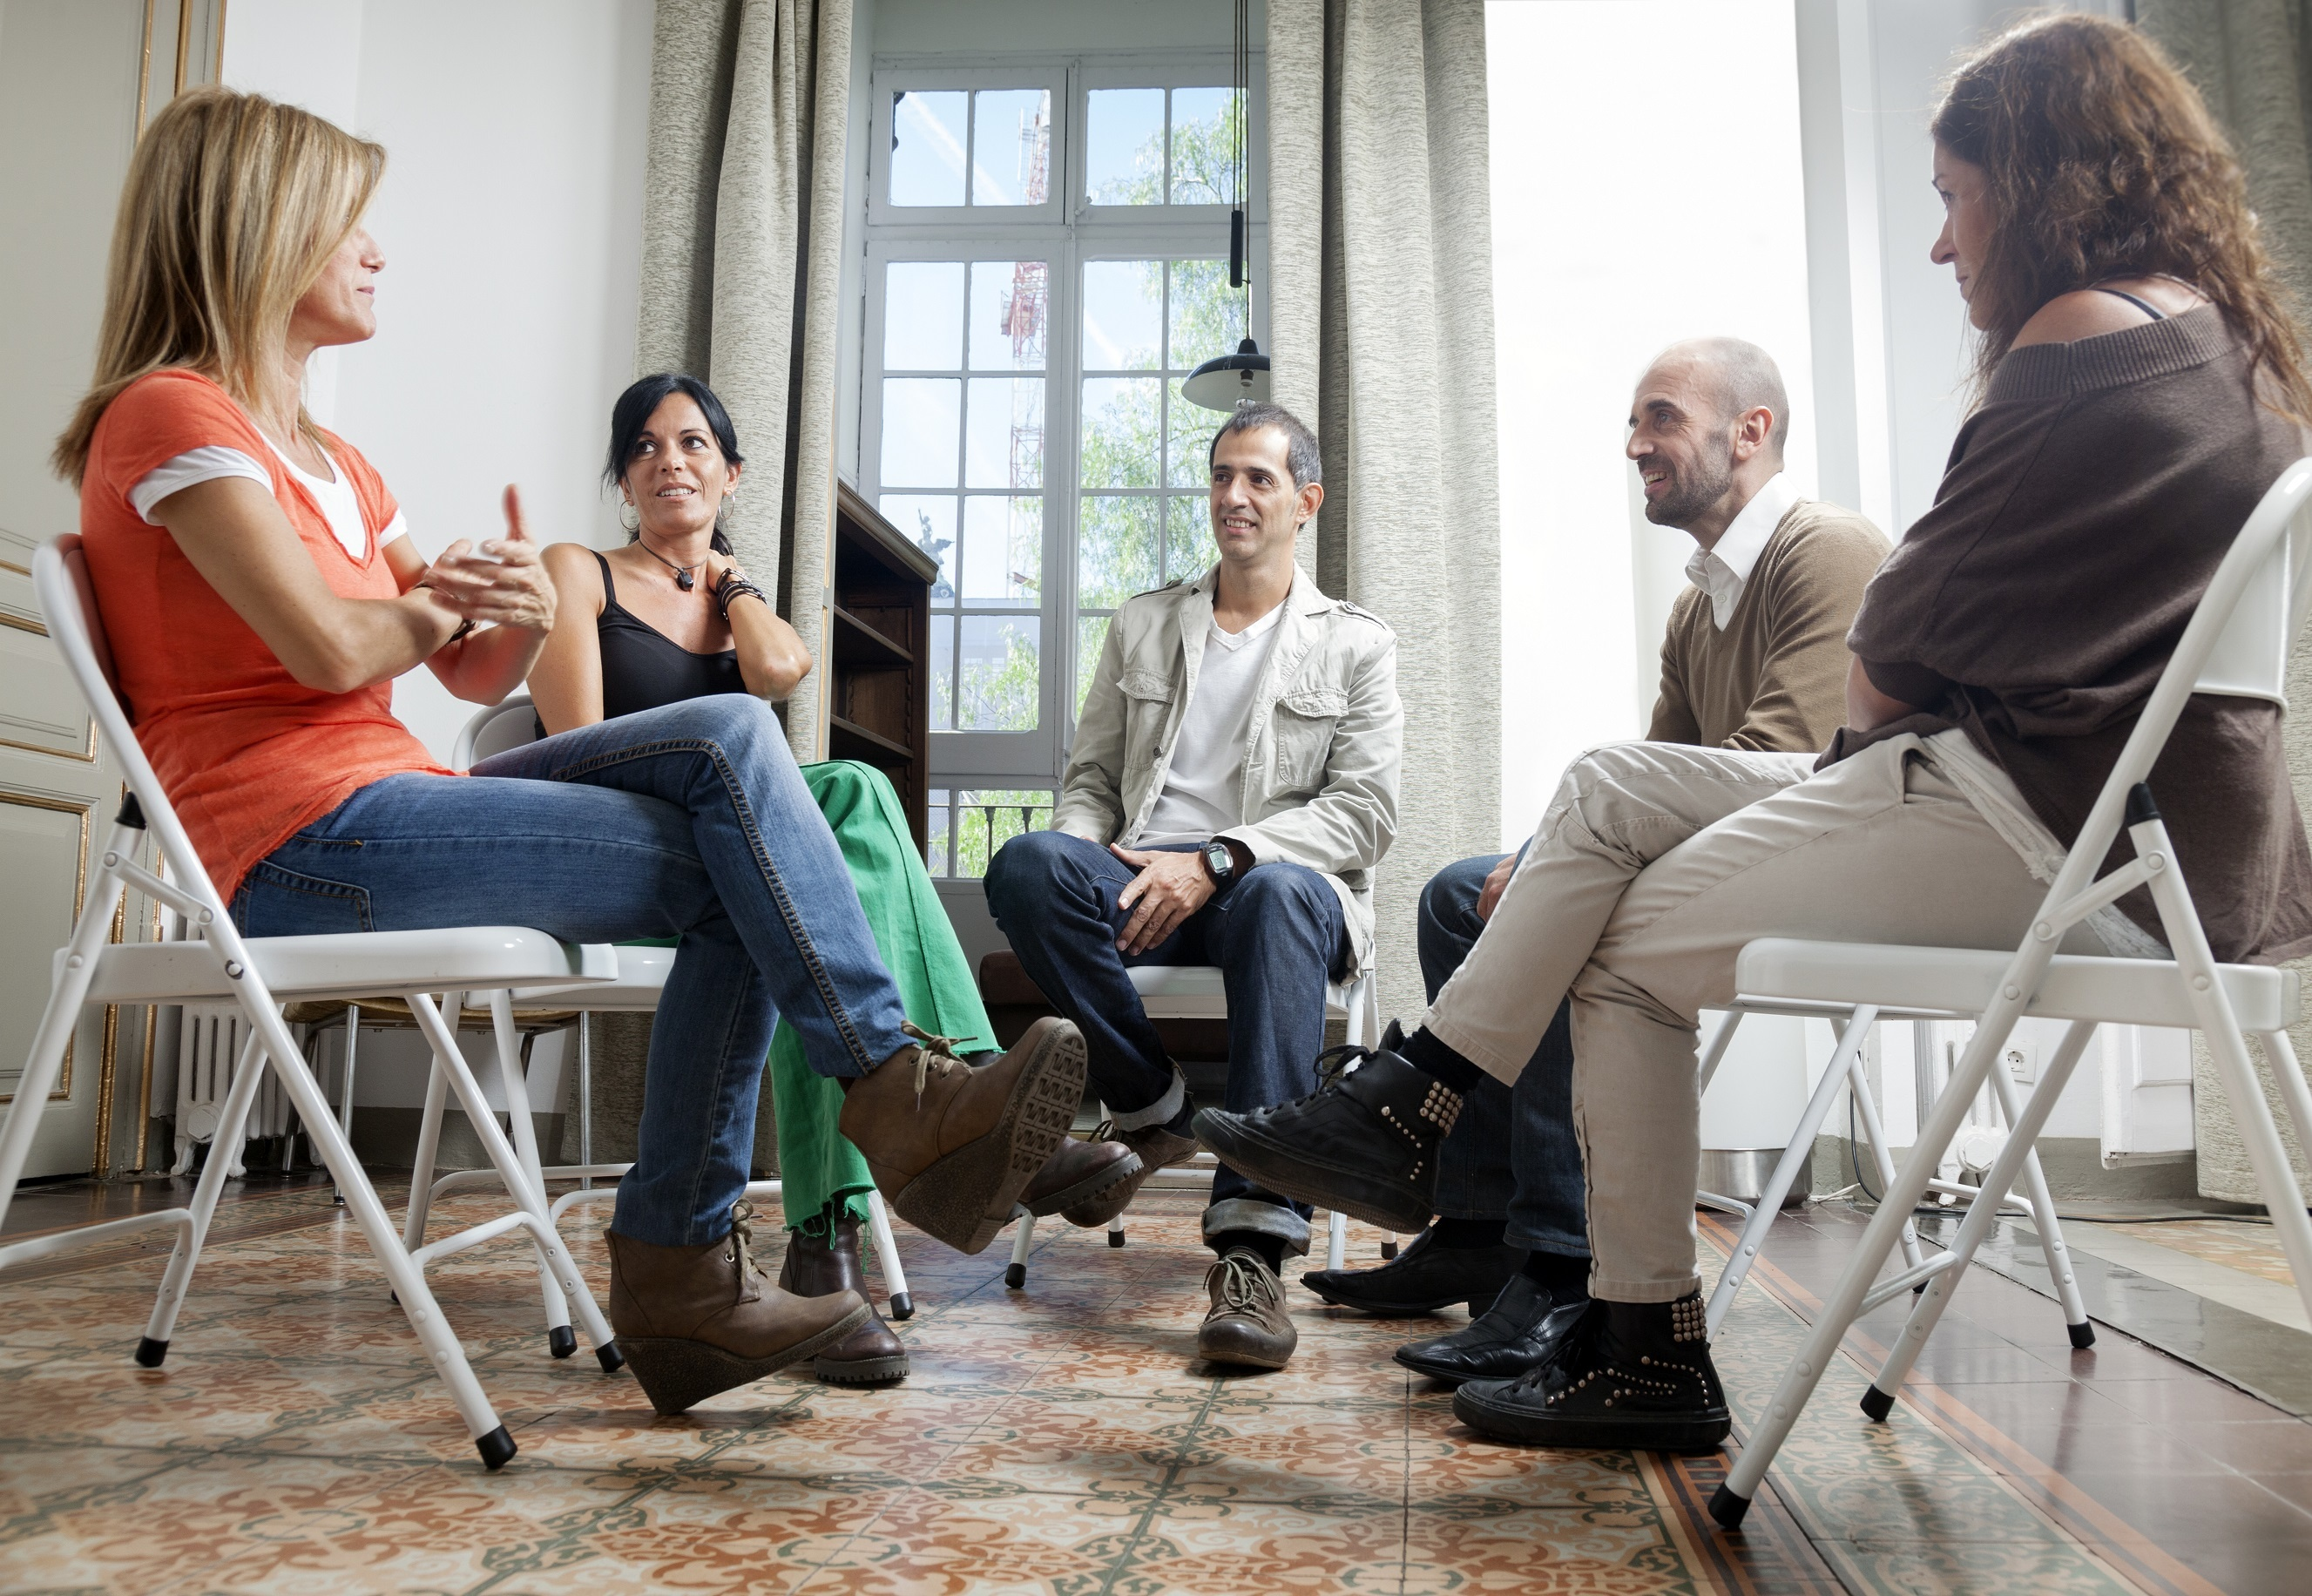 Stock Photo Support Group Mental Health 2